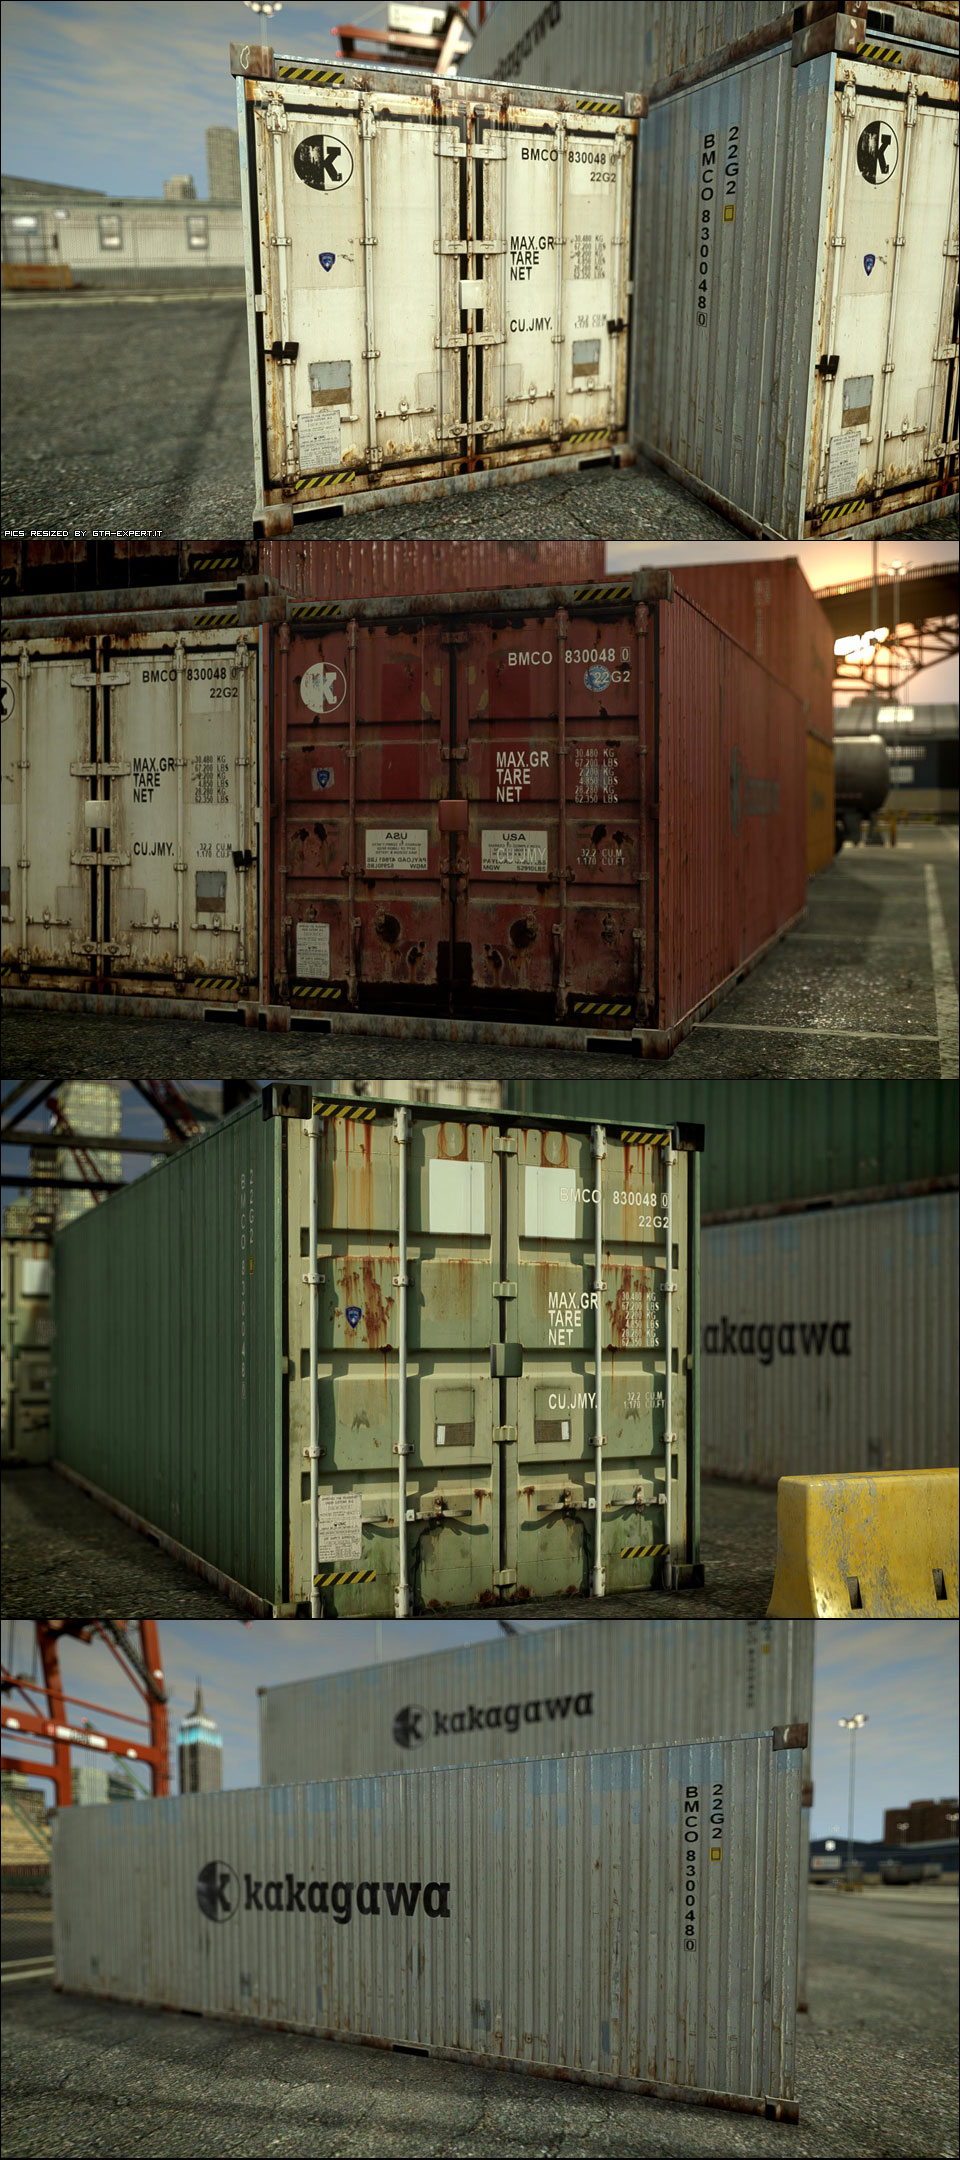 gta4_container_hd_lord_neophyte_v1_2.jpg